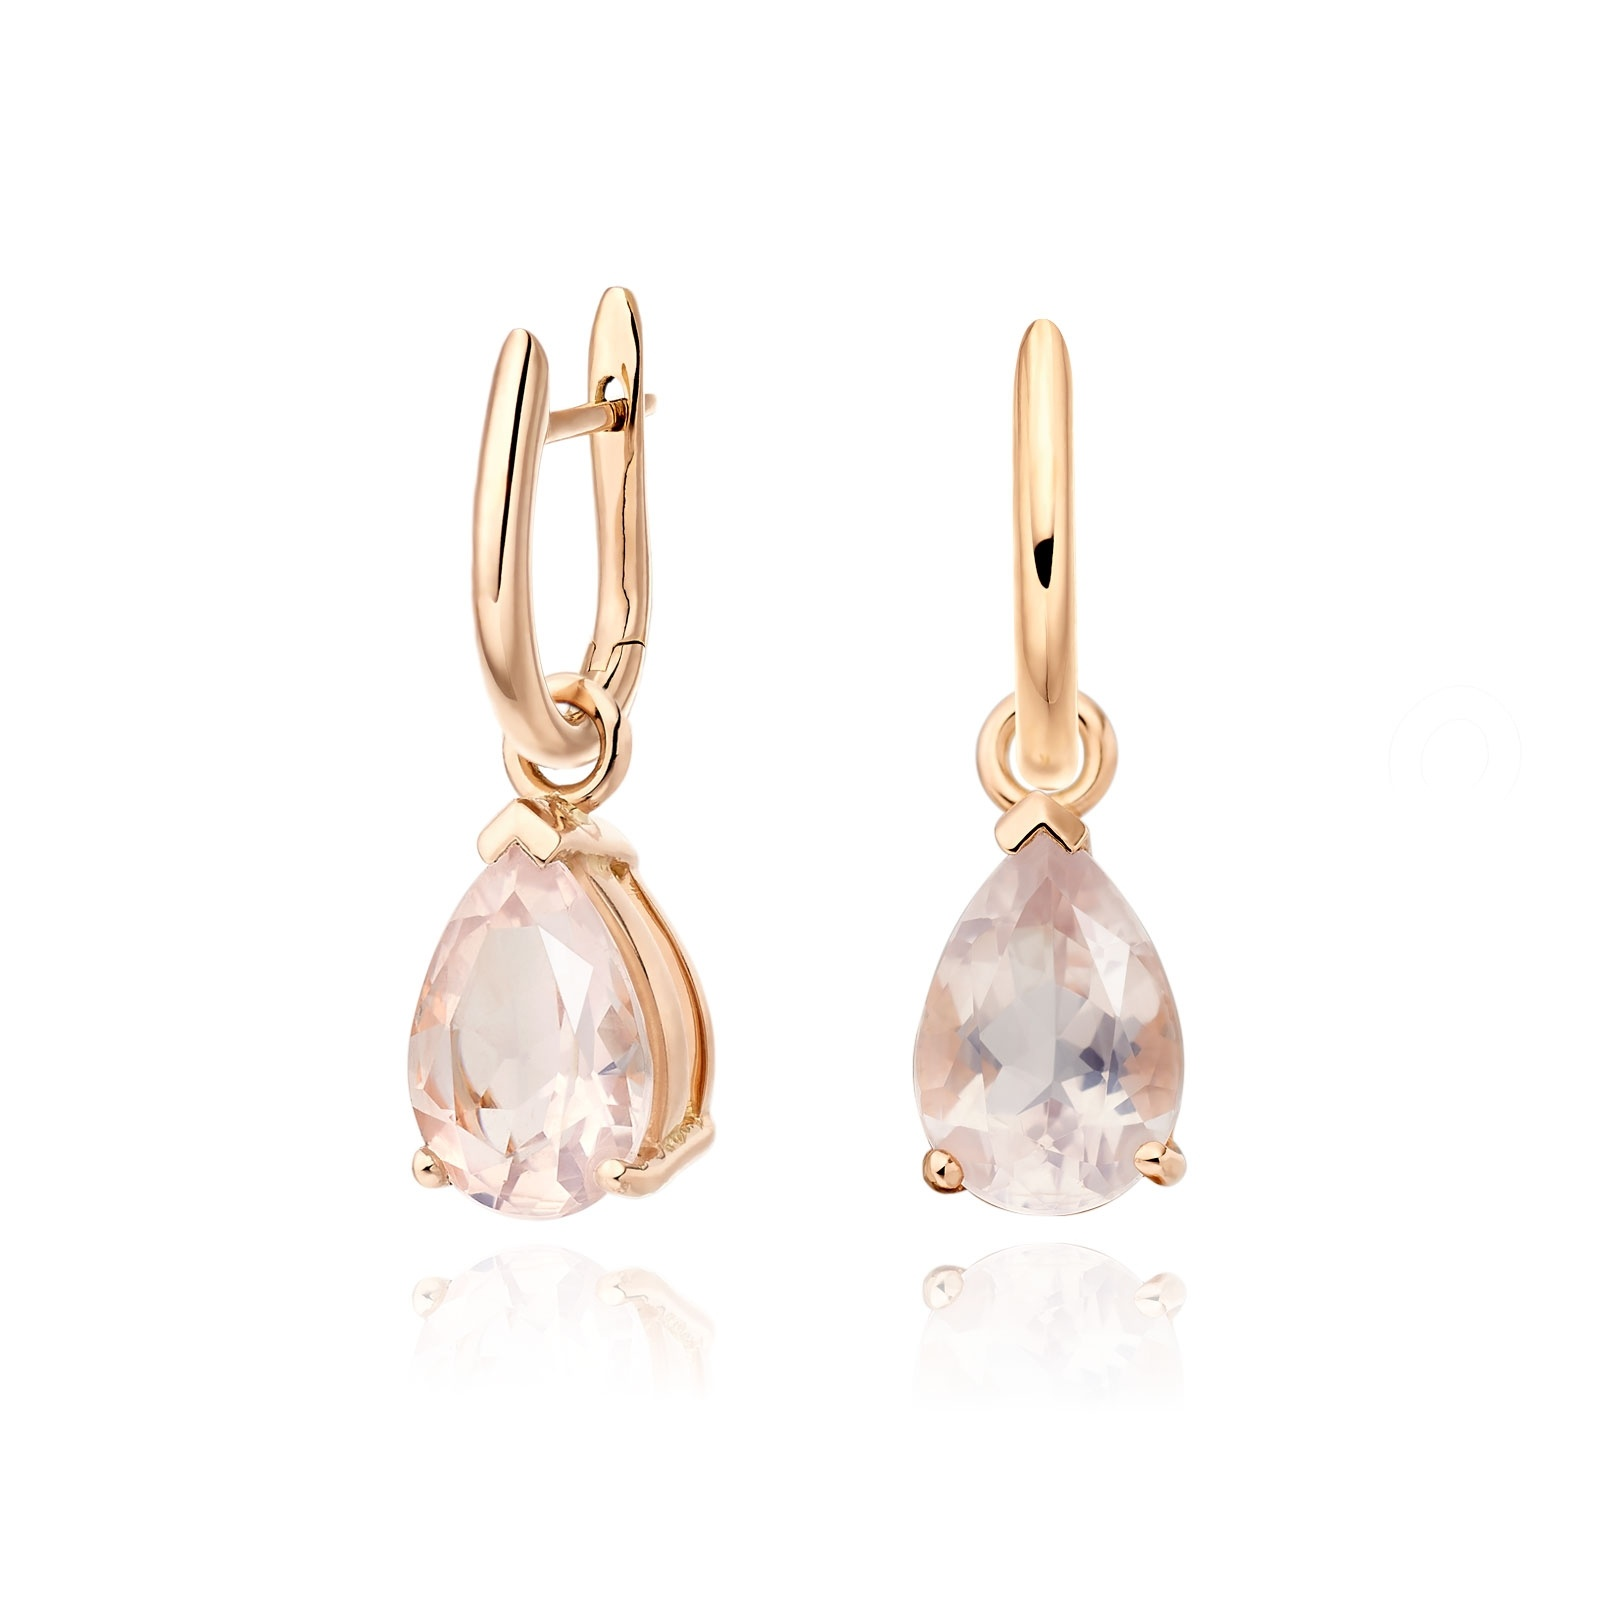 Rose Gold Huggie Earrings with Mythologie Rose Quartz Drops-EARQRG1248-1